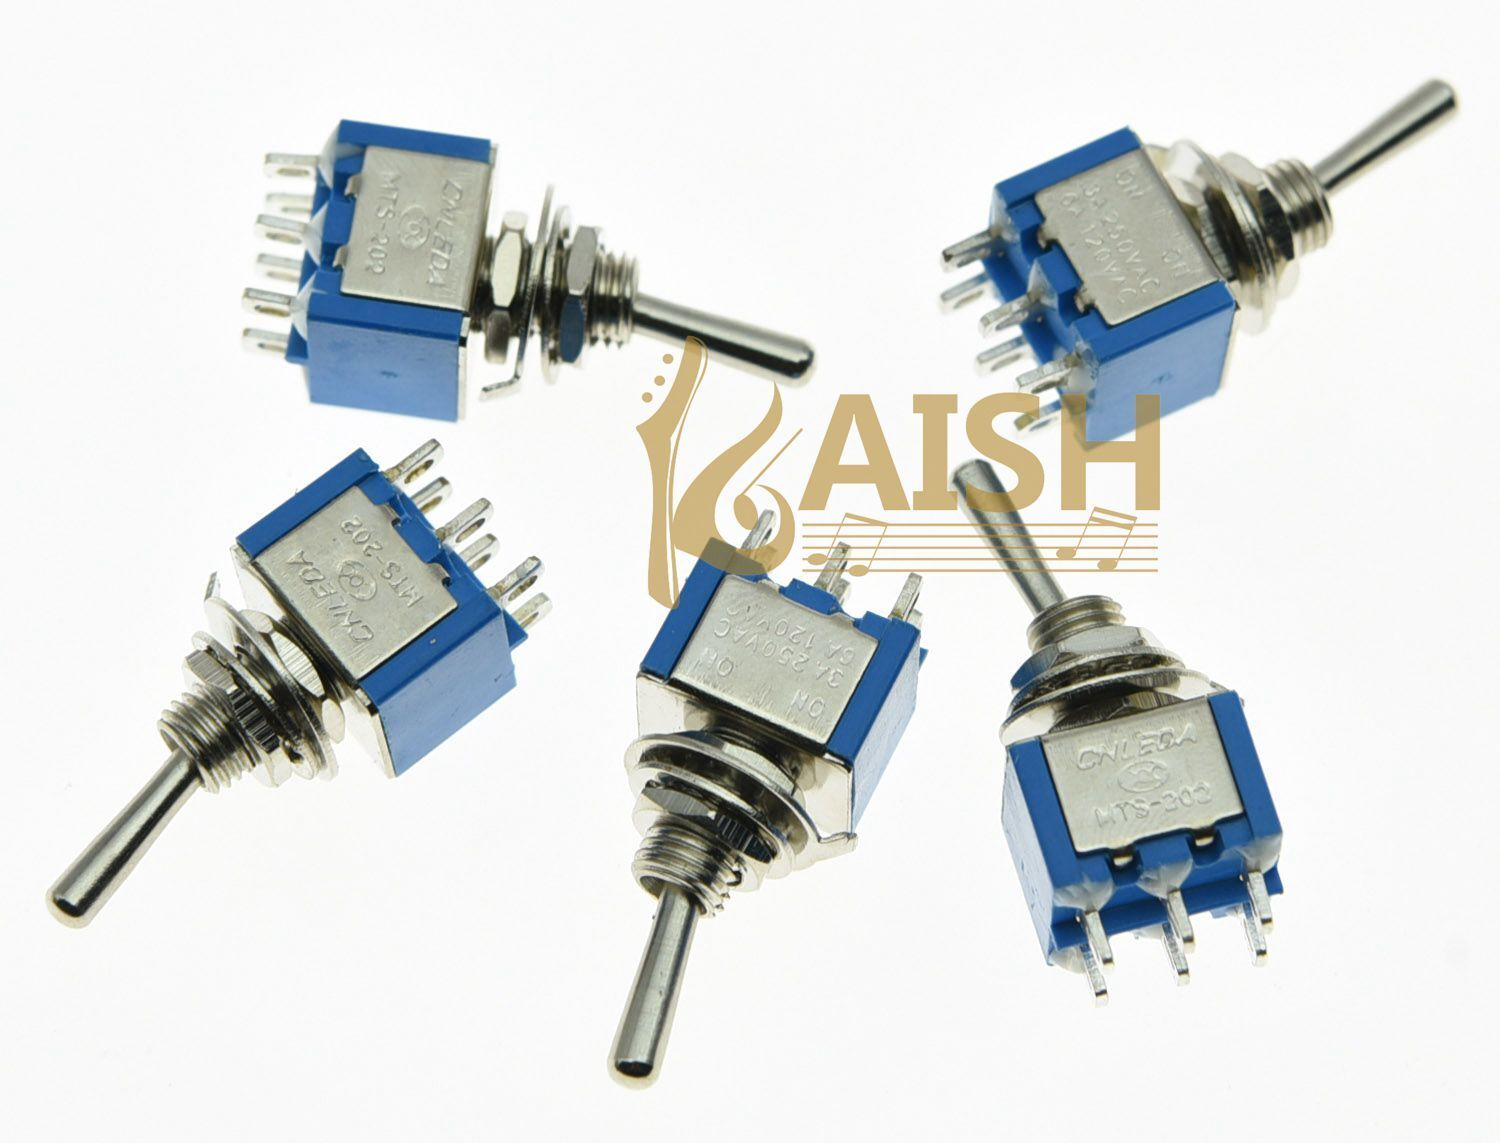 5x Dpdt Guitar Mini Toggle Switch 2 Position On 6 Pin Car Boat Wiring Harness Pickup 1v2t 5 Way 500k Pots For Fender Strat Norton Secured Powered By Verisign